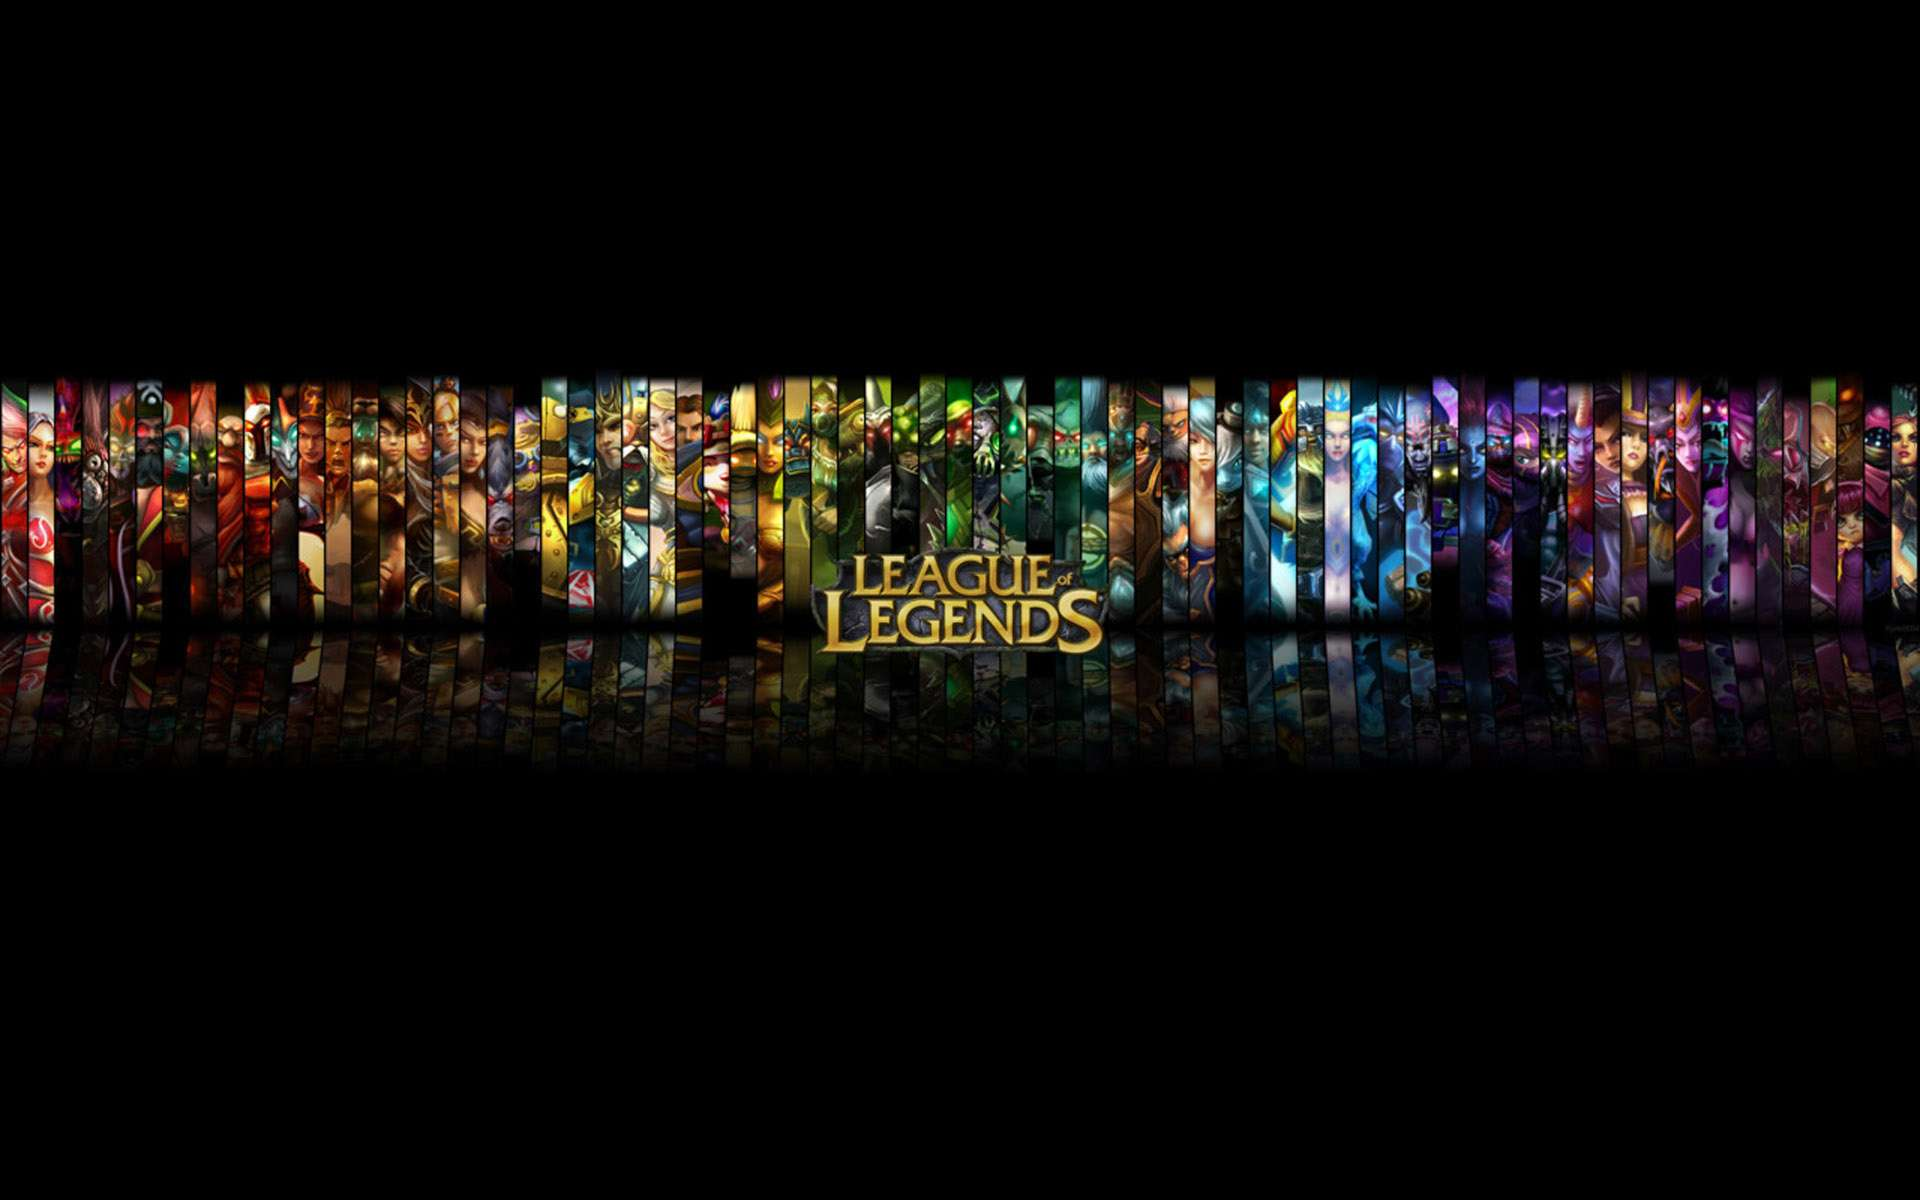 League of Legends Wallpaper 089